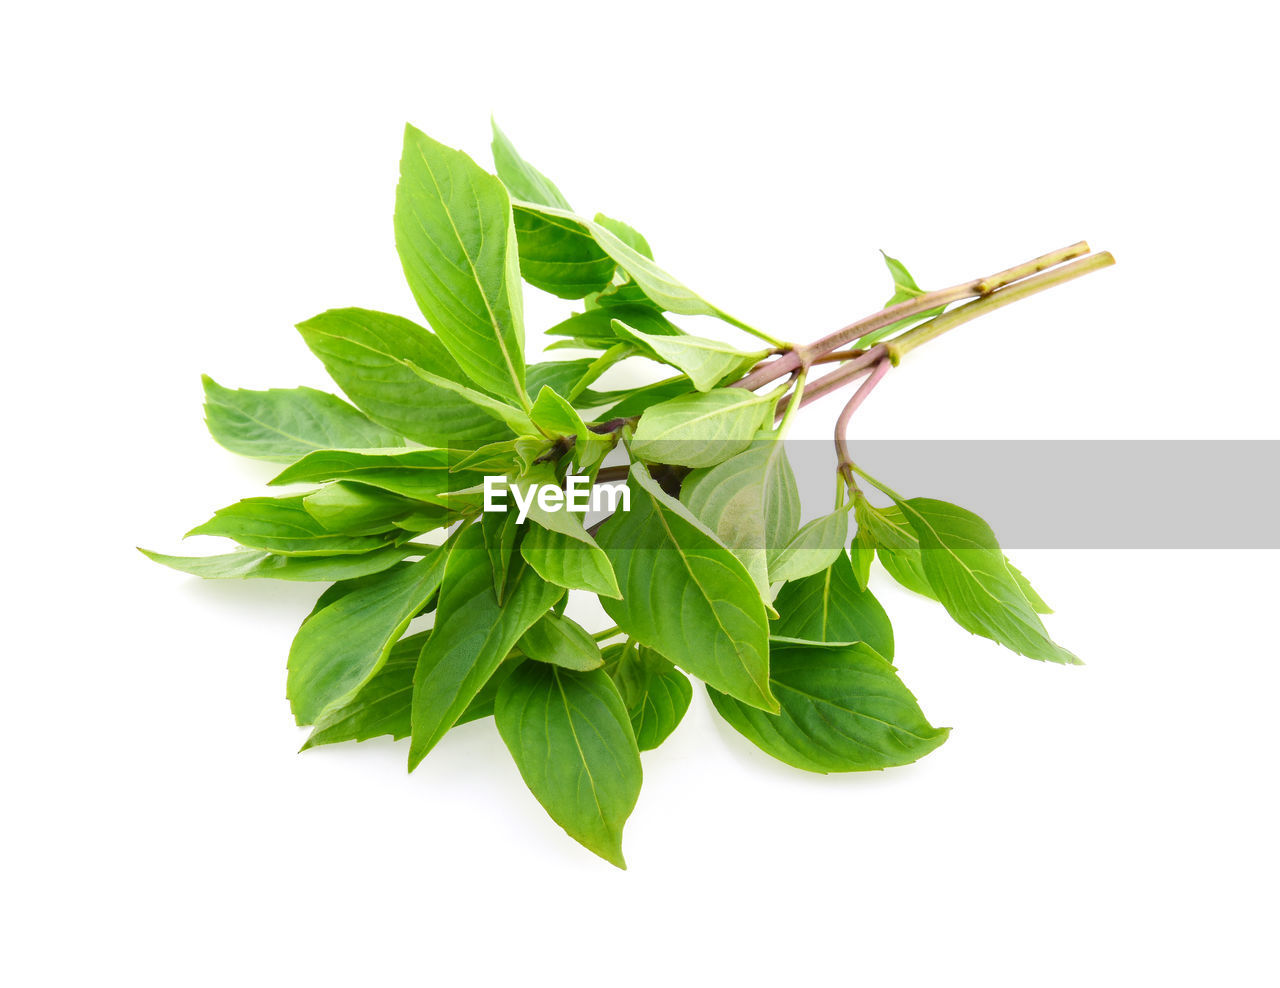 white background, studio shot, leaf, plant part, green color, indoors, close-up, food and drink, herb, food, cut out, no people, nature, wellbeing, still life, healthy eating, plant, freshness, leaves, basil, mint leaf - culinary